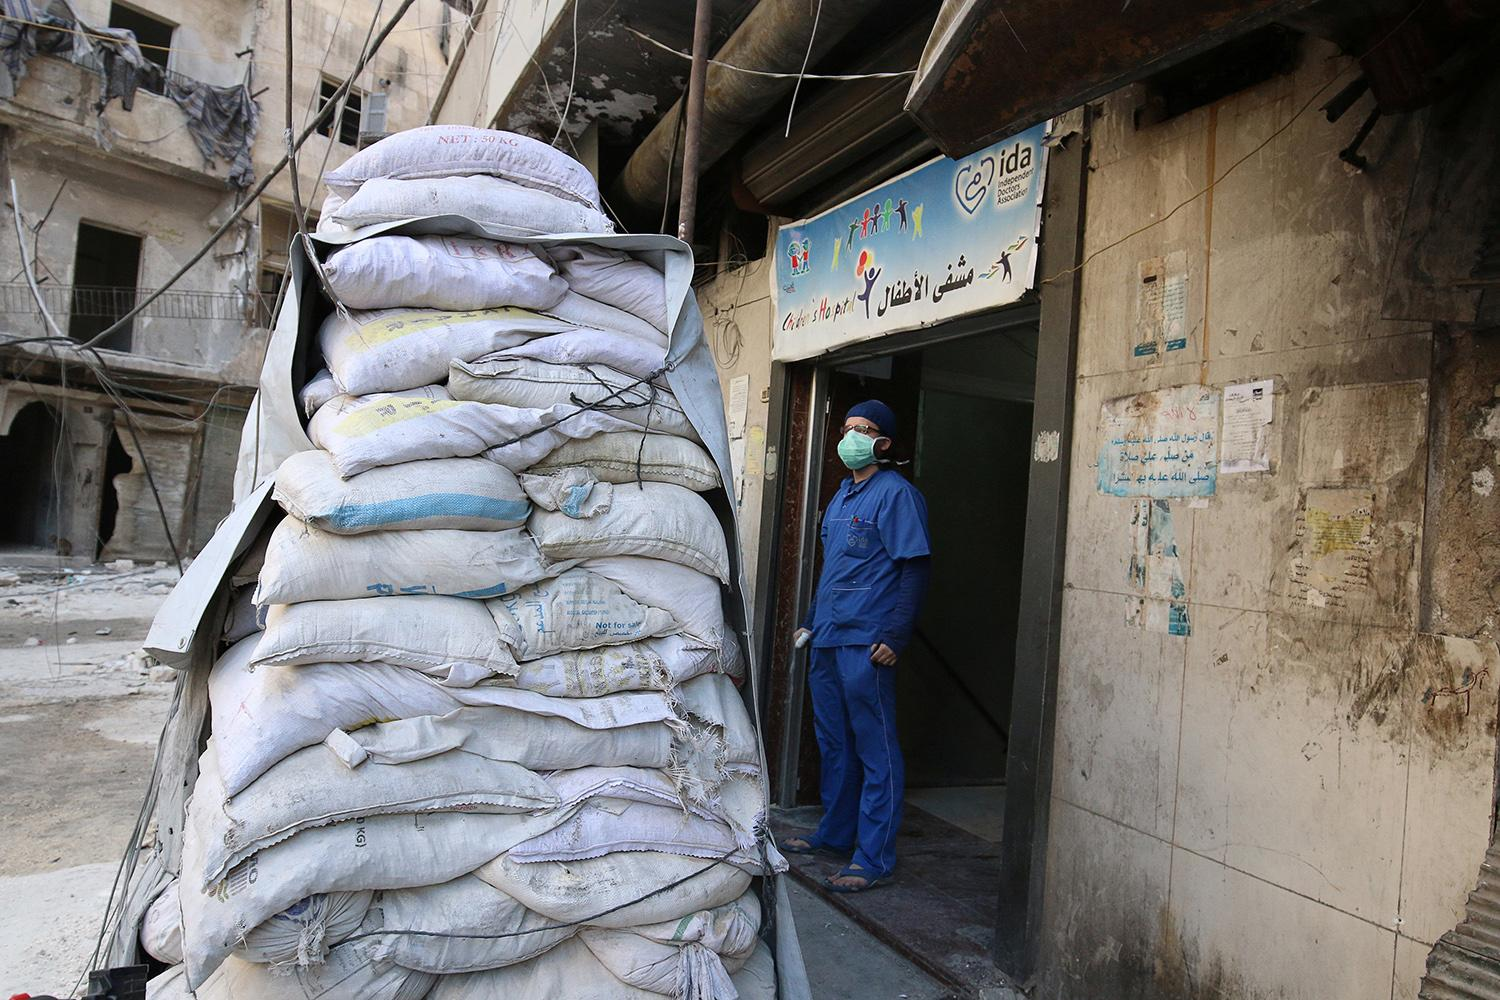 <p>A medic stands behind sandbags in the damaged al-Hakeem hospital, in the rebel-held besieged area of Aleppo, Syria Nov. 19, 2016. (Photo: Abdalrhman Ismail/Reuters) </p>